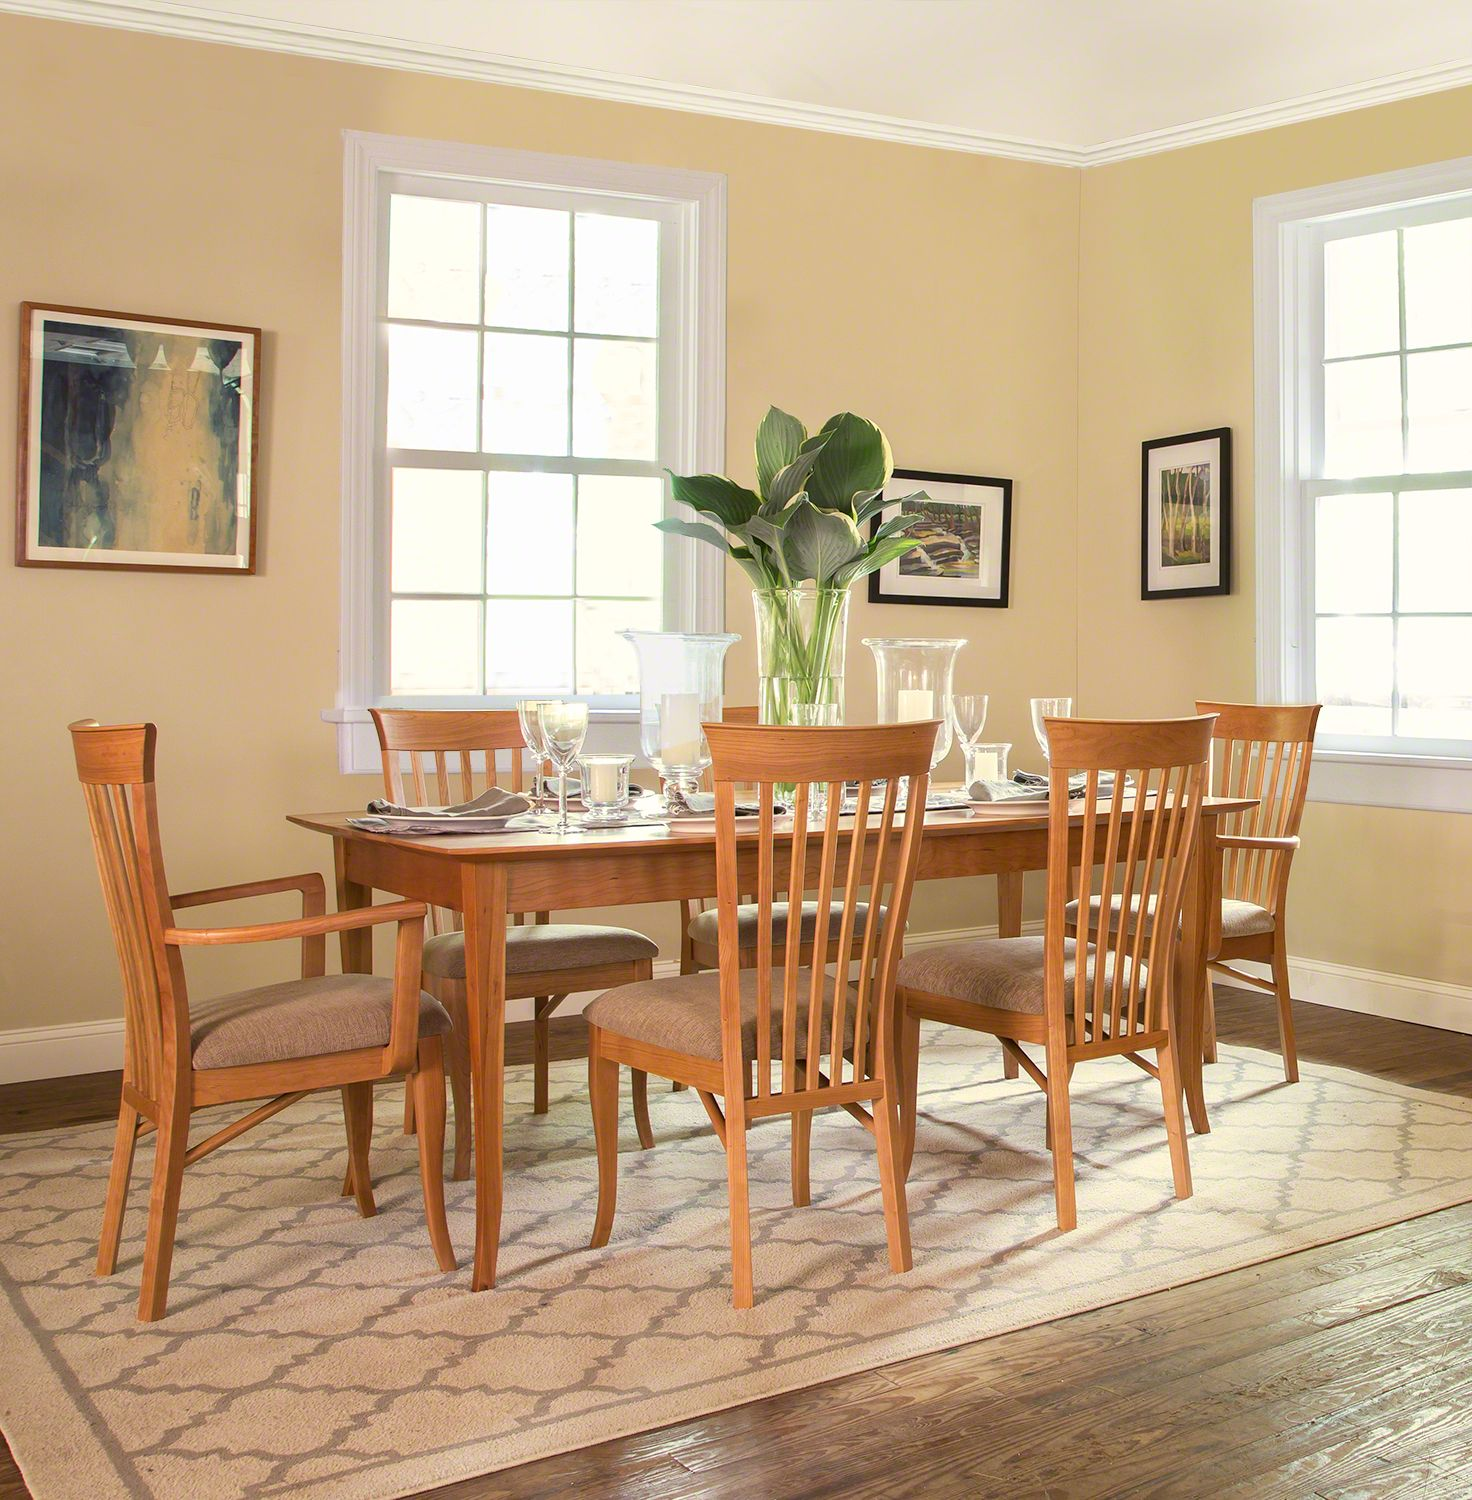 shaker dining room chairs. Find America\u0027s Best Shaker Style Dining Tables, Chairs, Chests, Buffets, And Hutches Room Chairs U